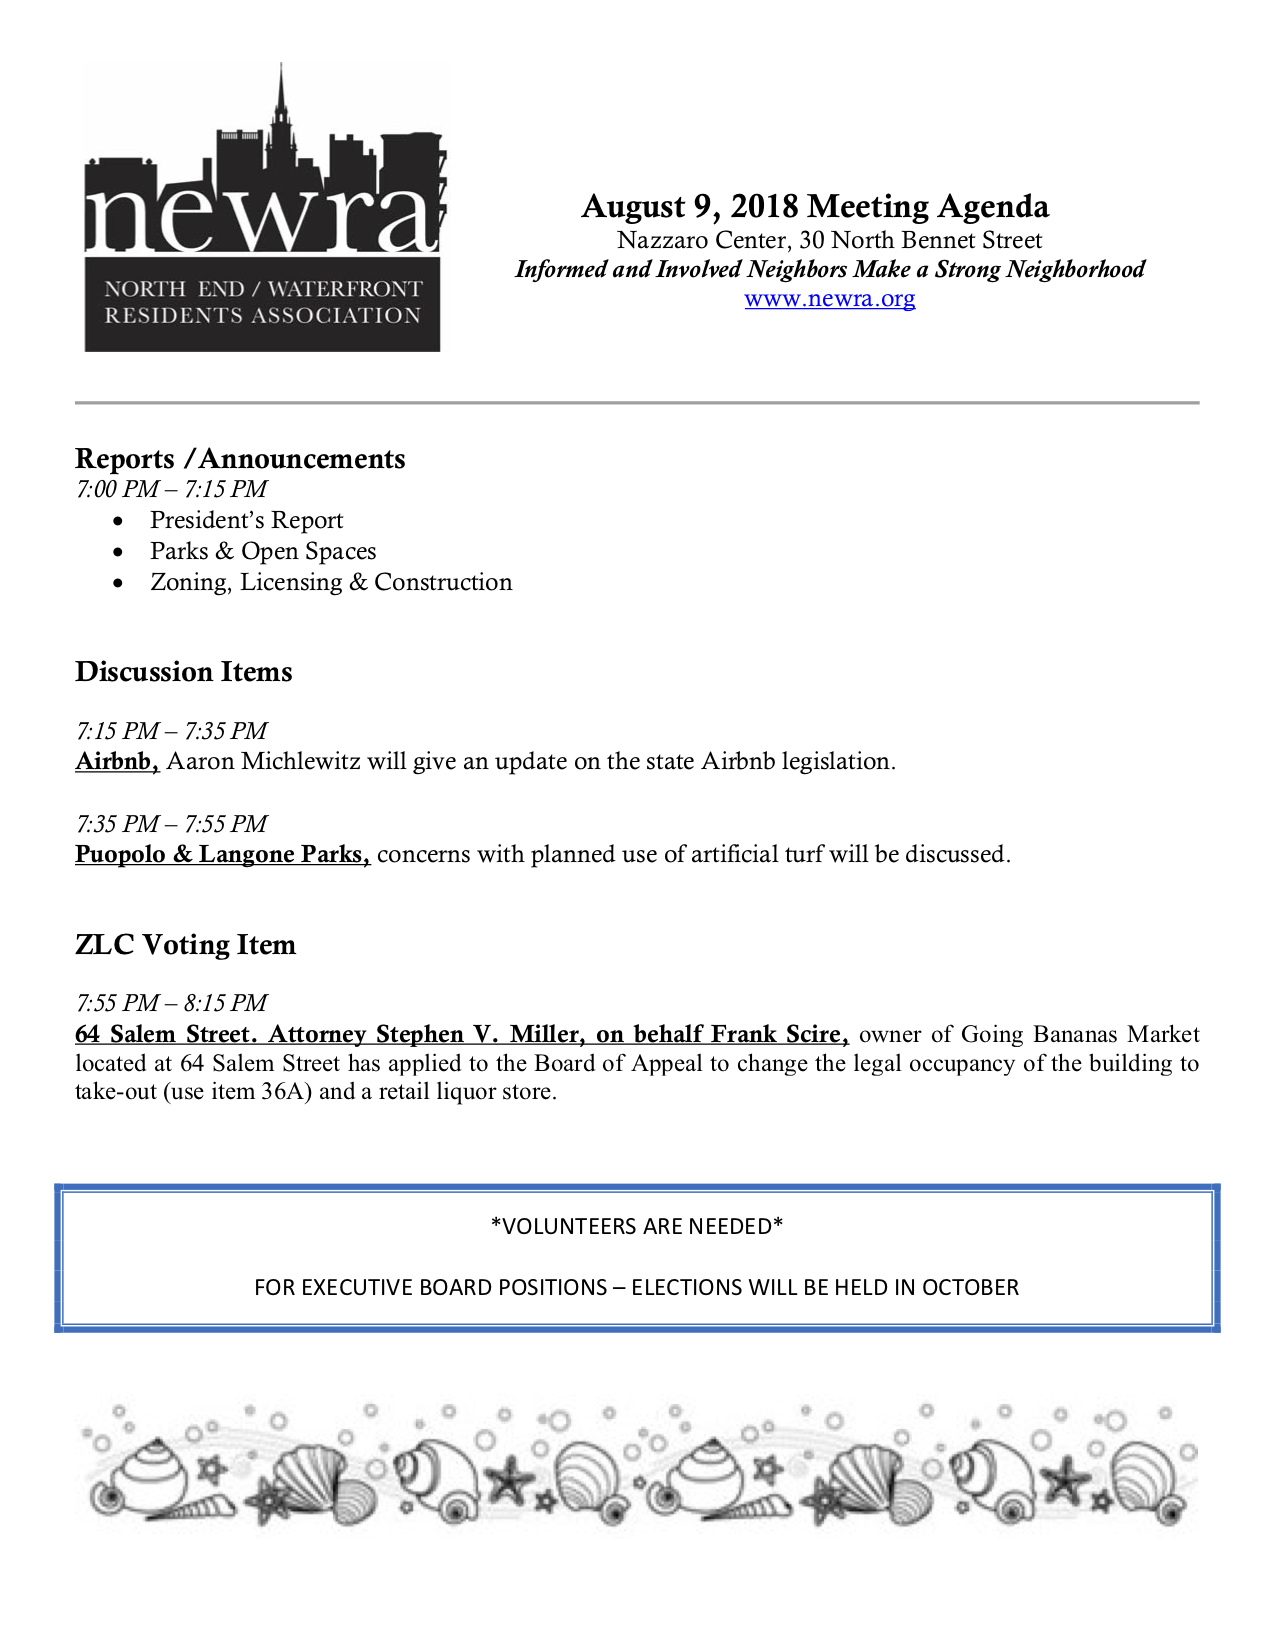 Residents' Association August 9 Agenda: AirBnB Update from